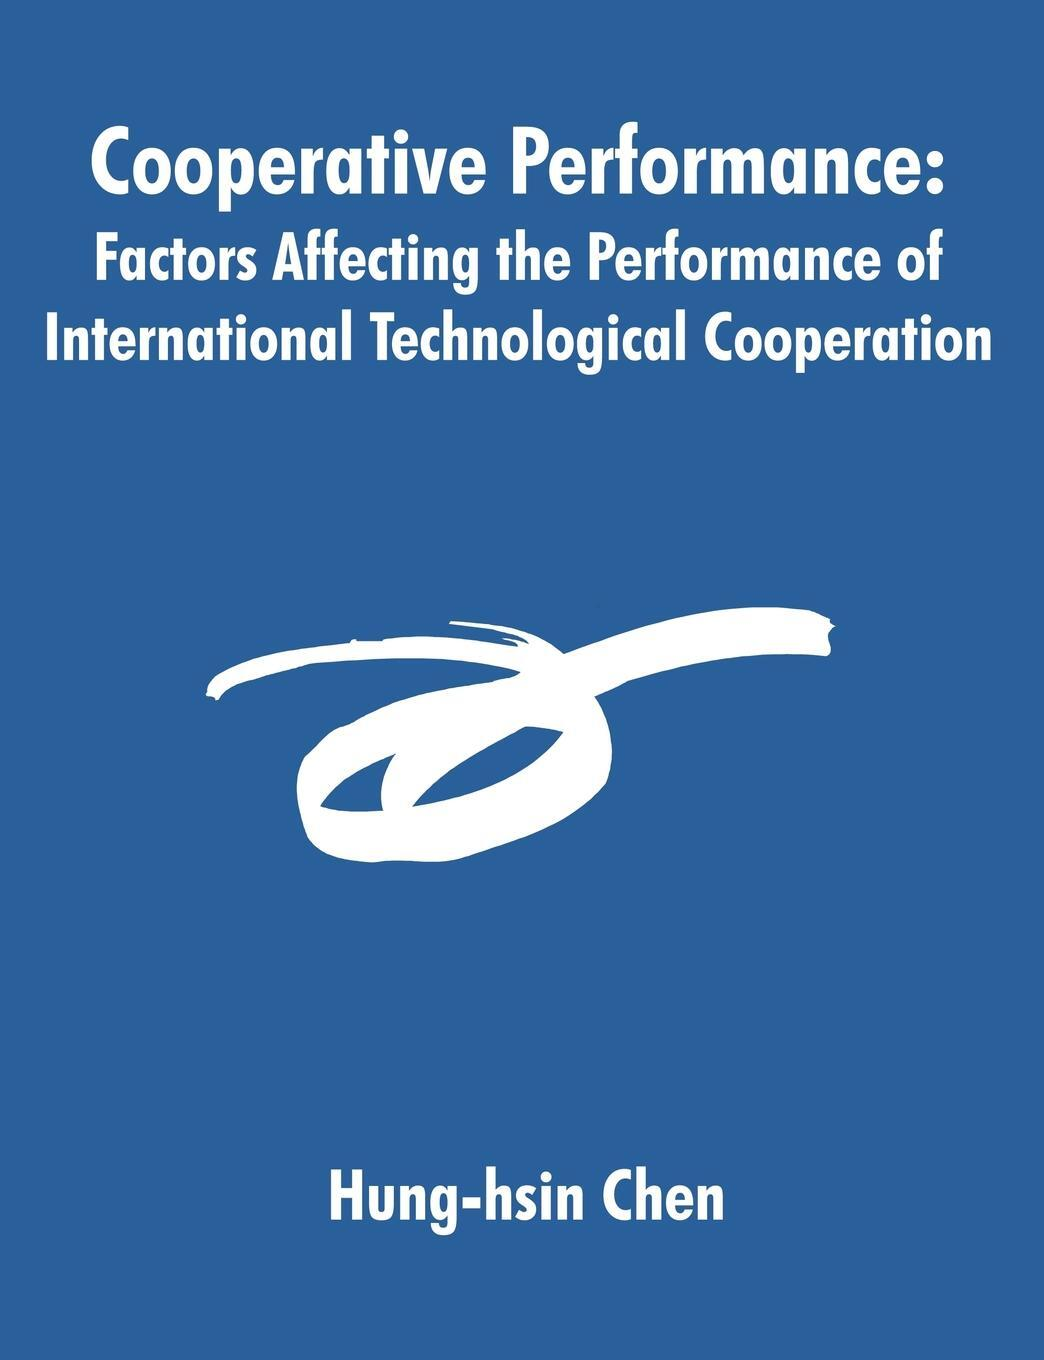 Cooperative Performance. Factors Affecting the Performance of International Technological Cooperation